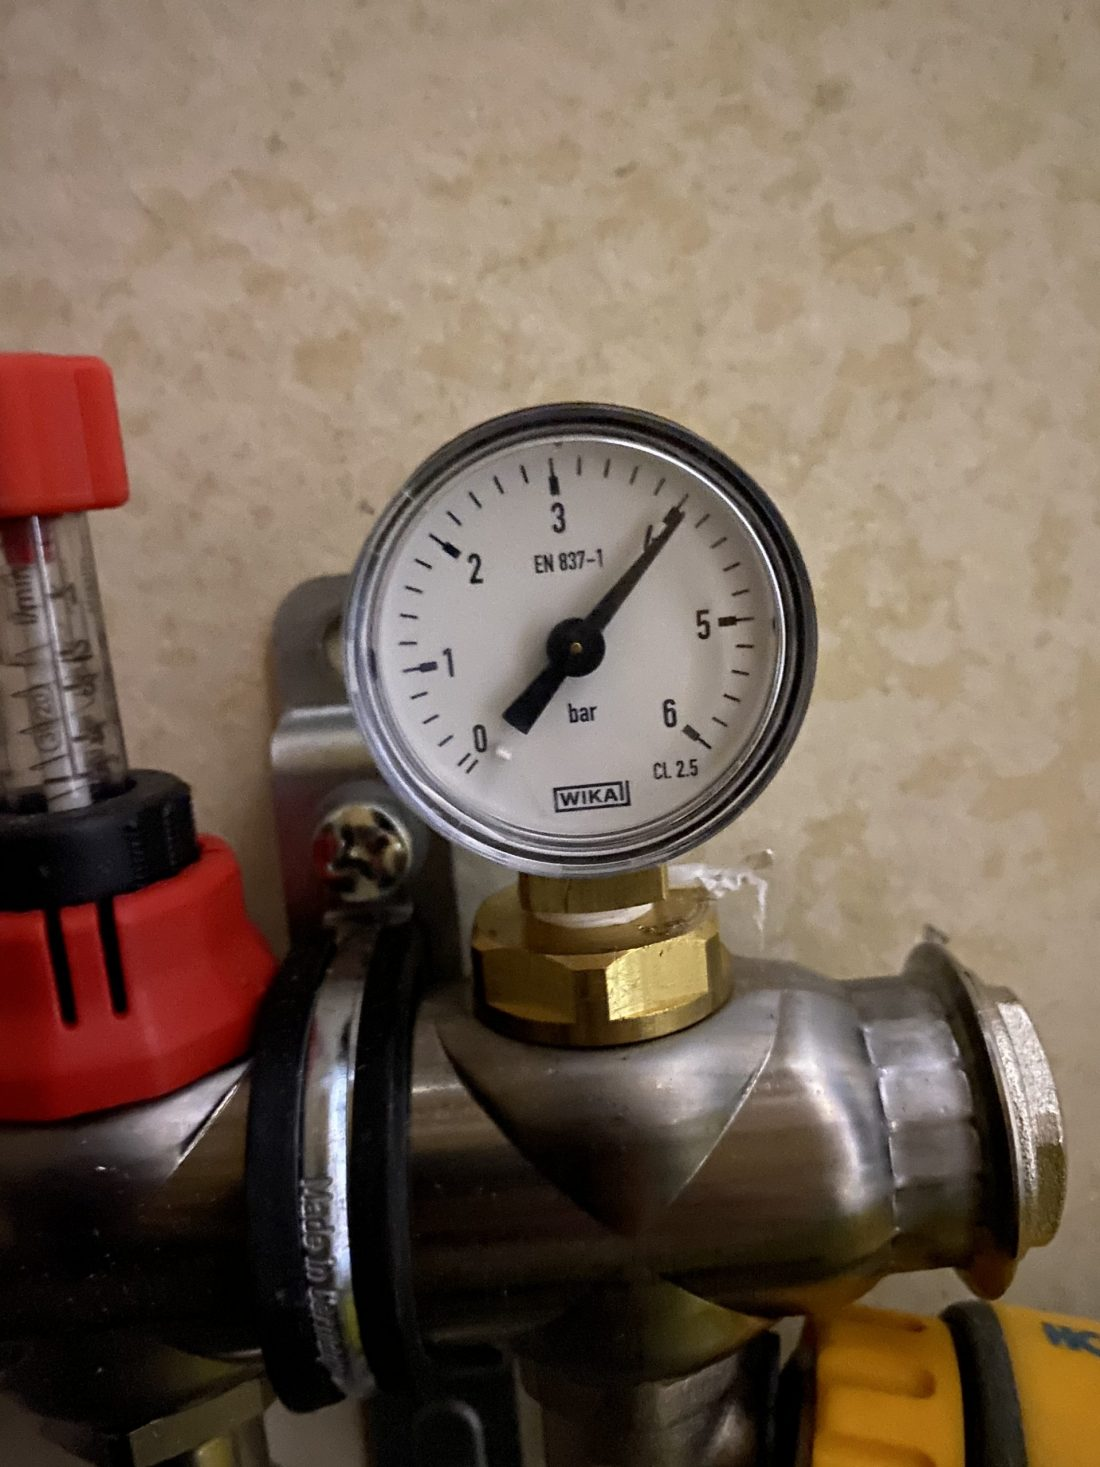 Pressure gauge at 4 bar